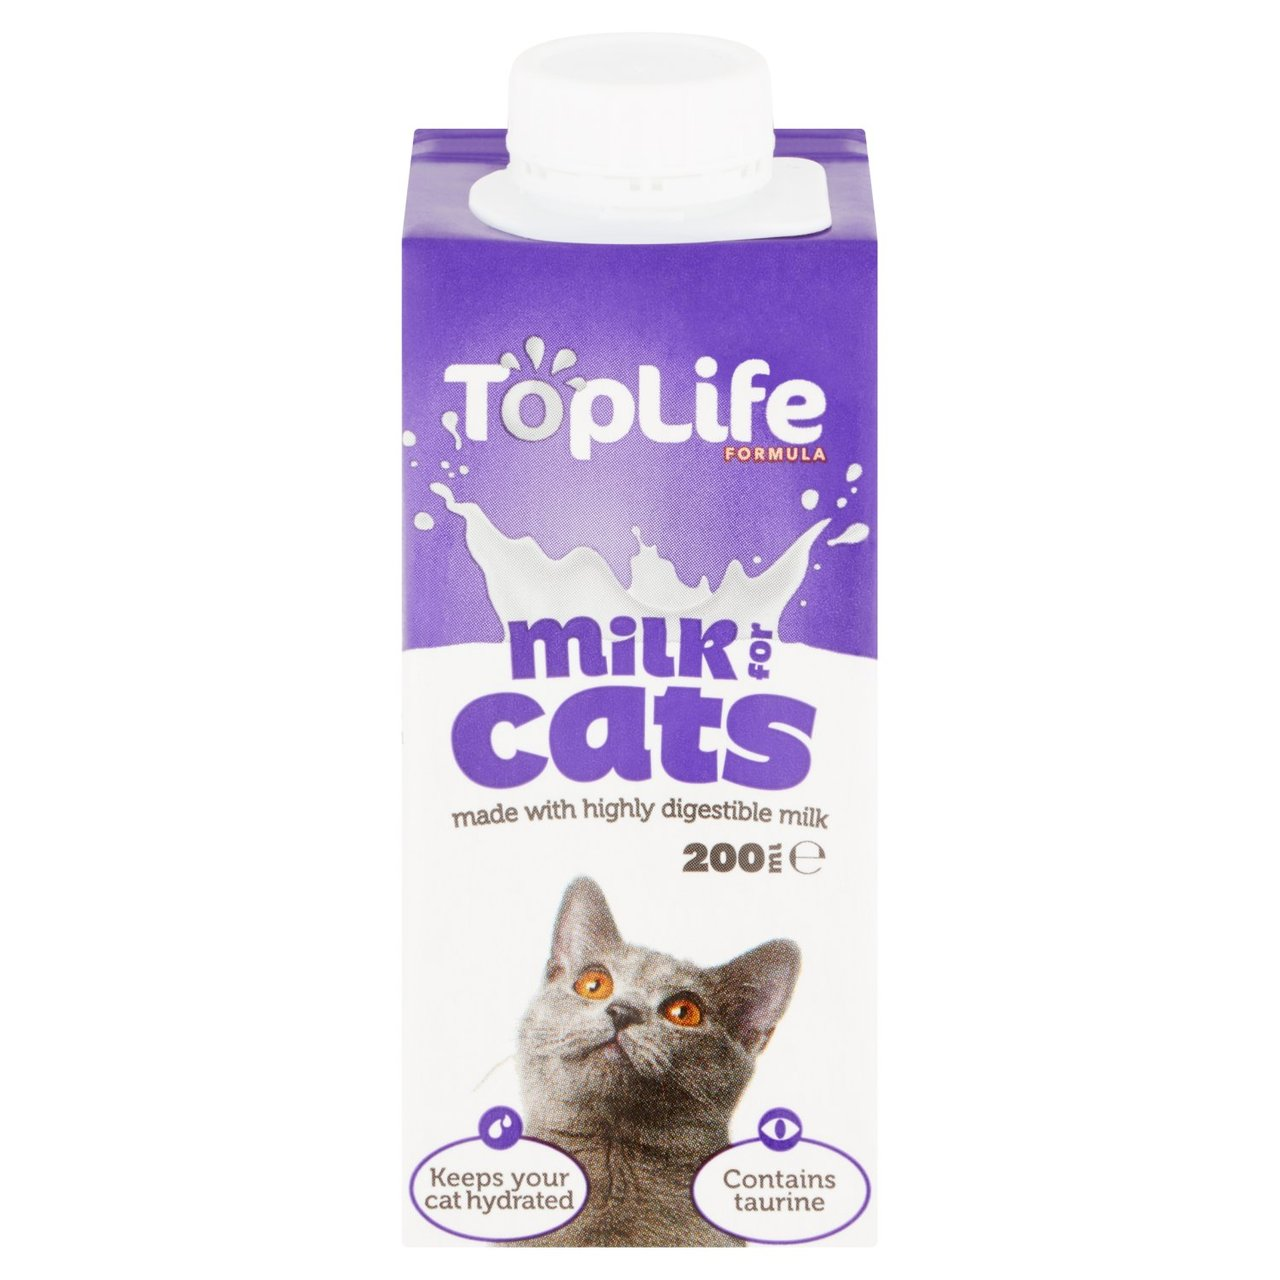 An image of TopLife Lactose Reduced Cows Milk for Cats